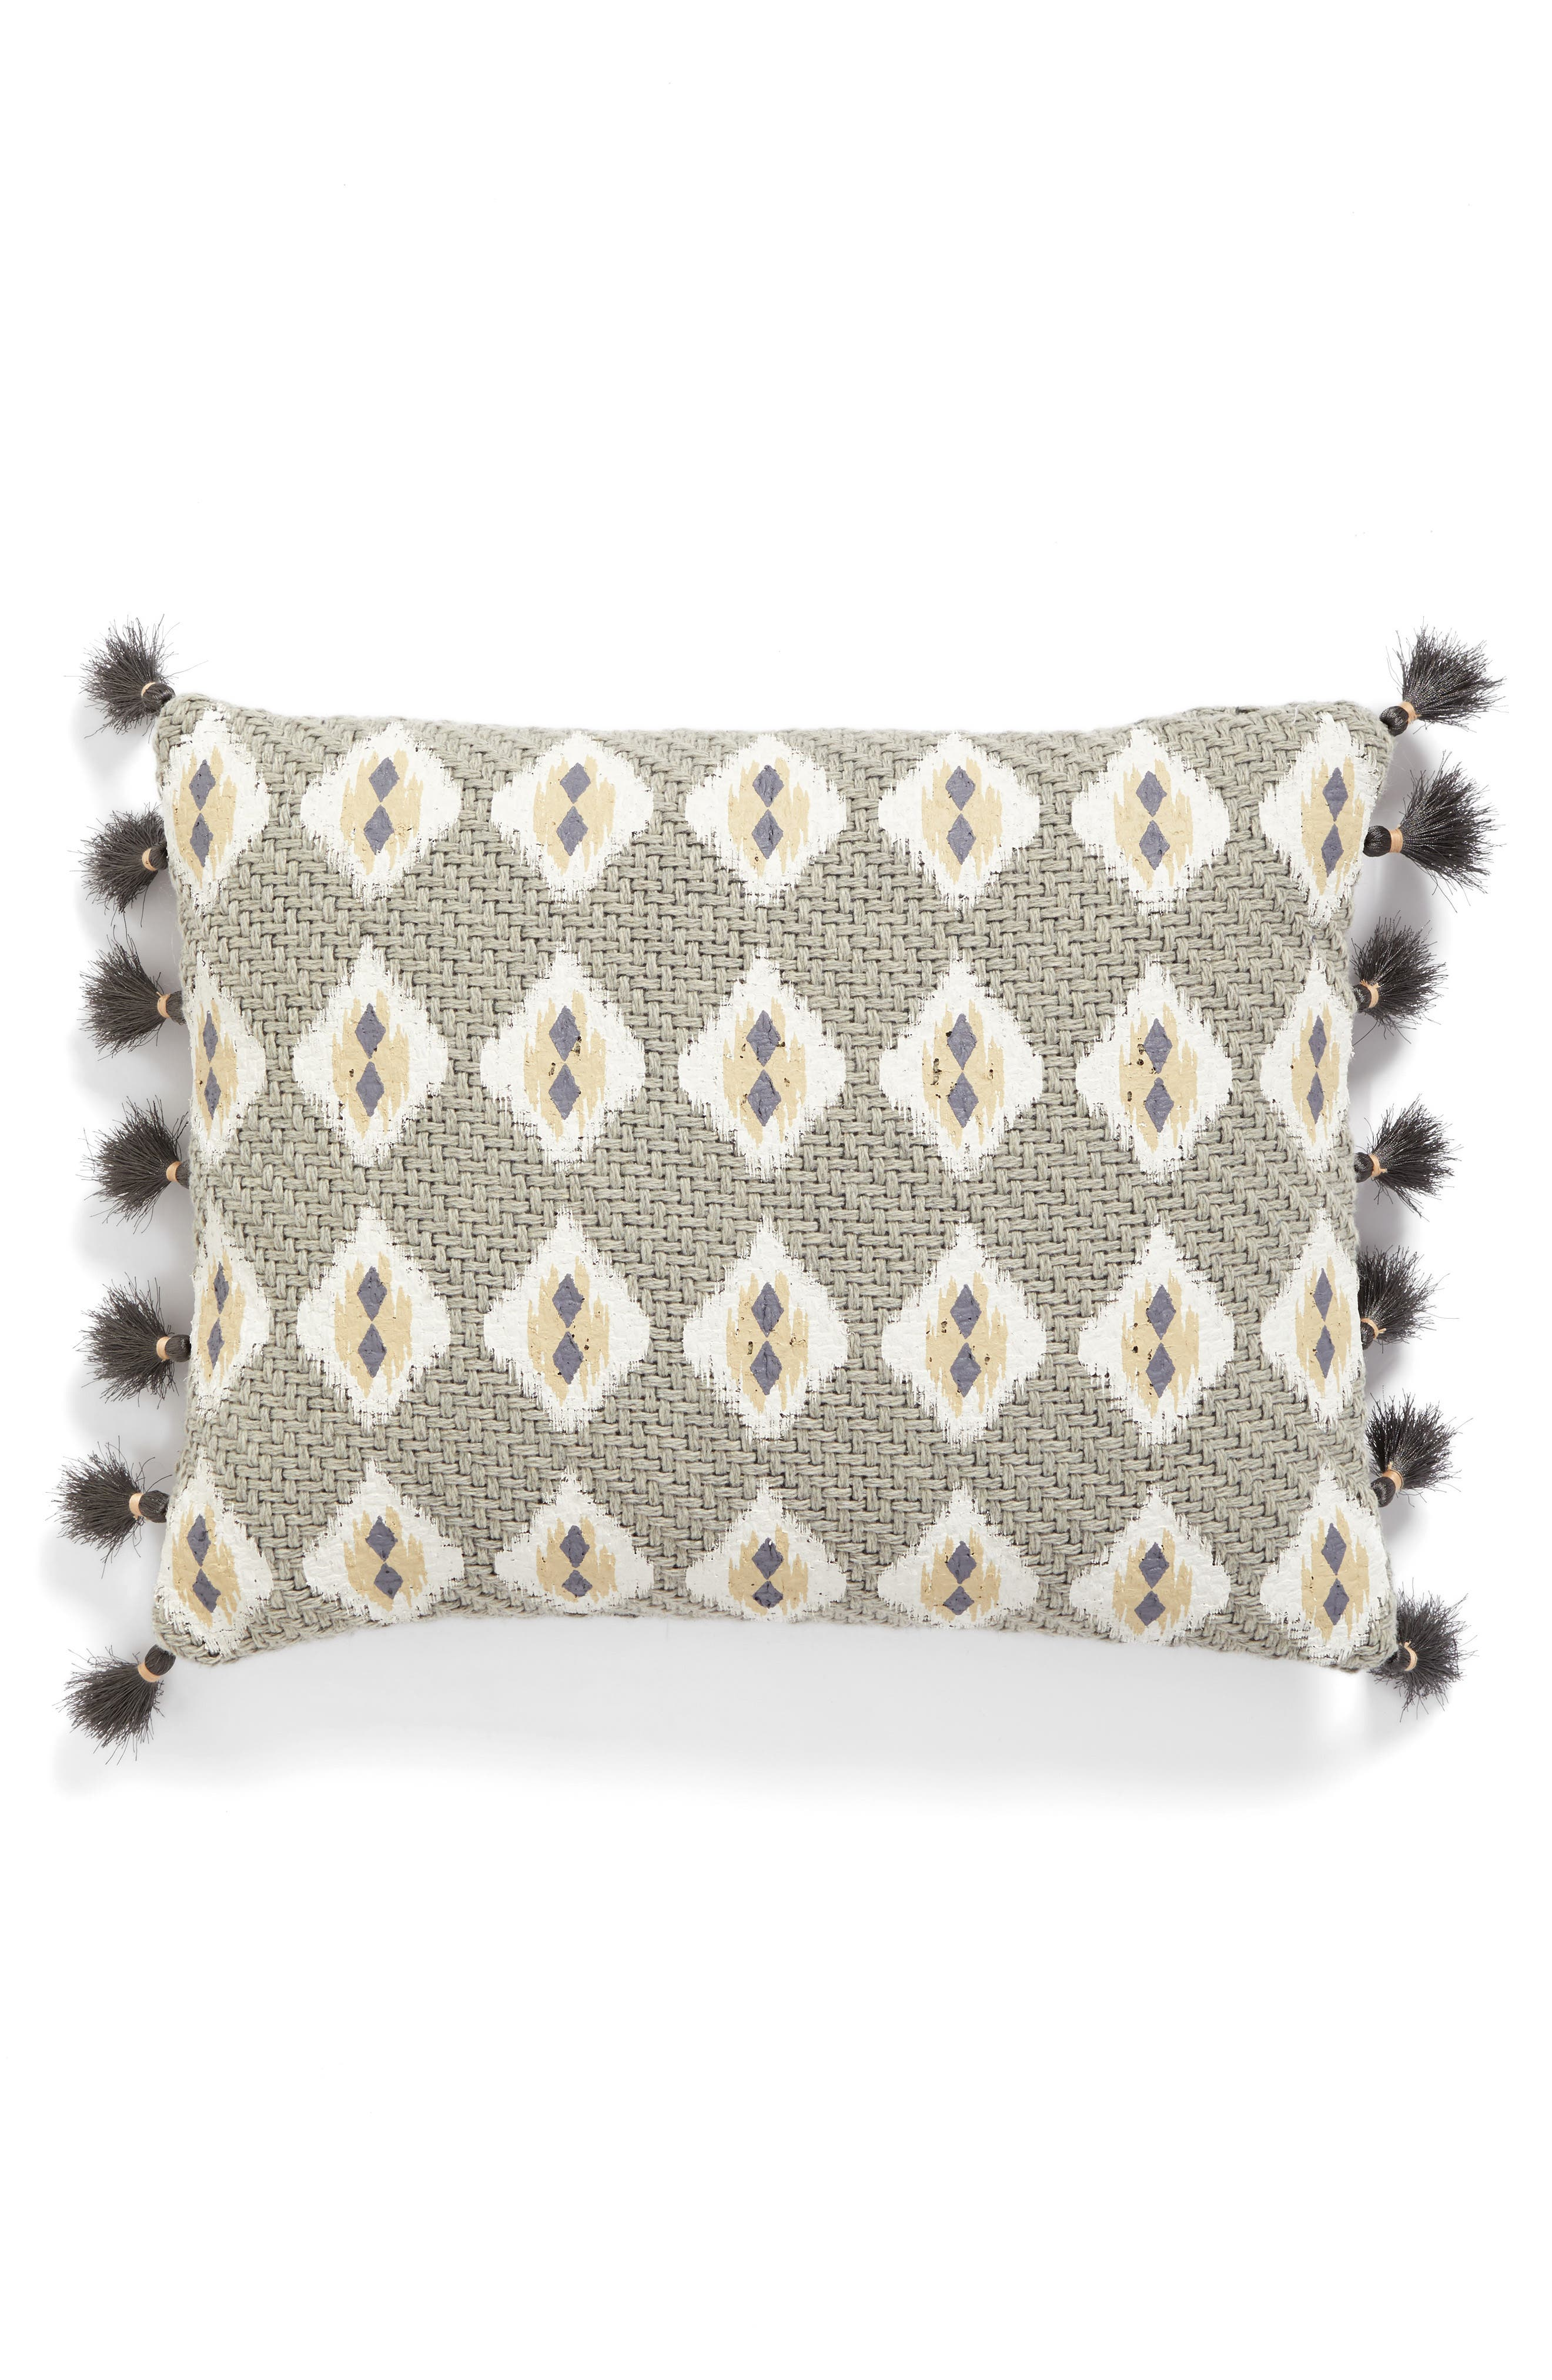 Alternate Image 1 Selected - Levtex Matmi Tassels Accent Pillow